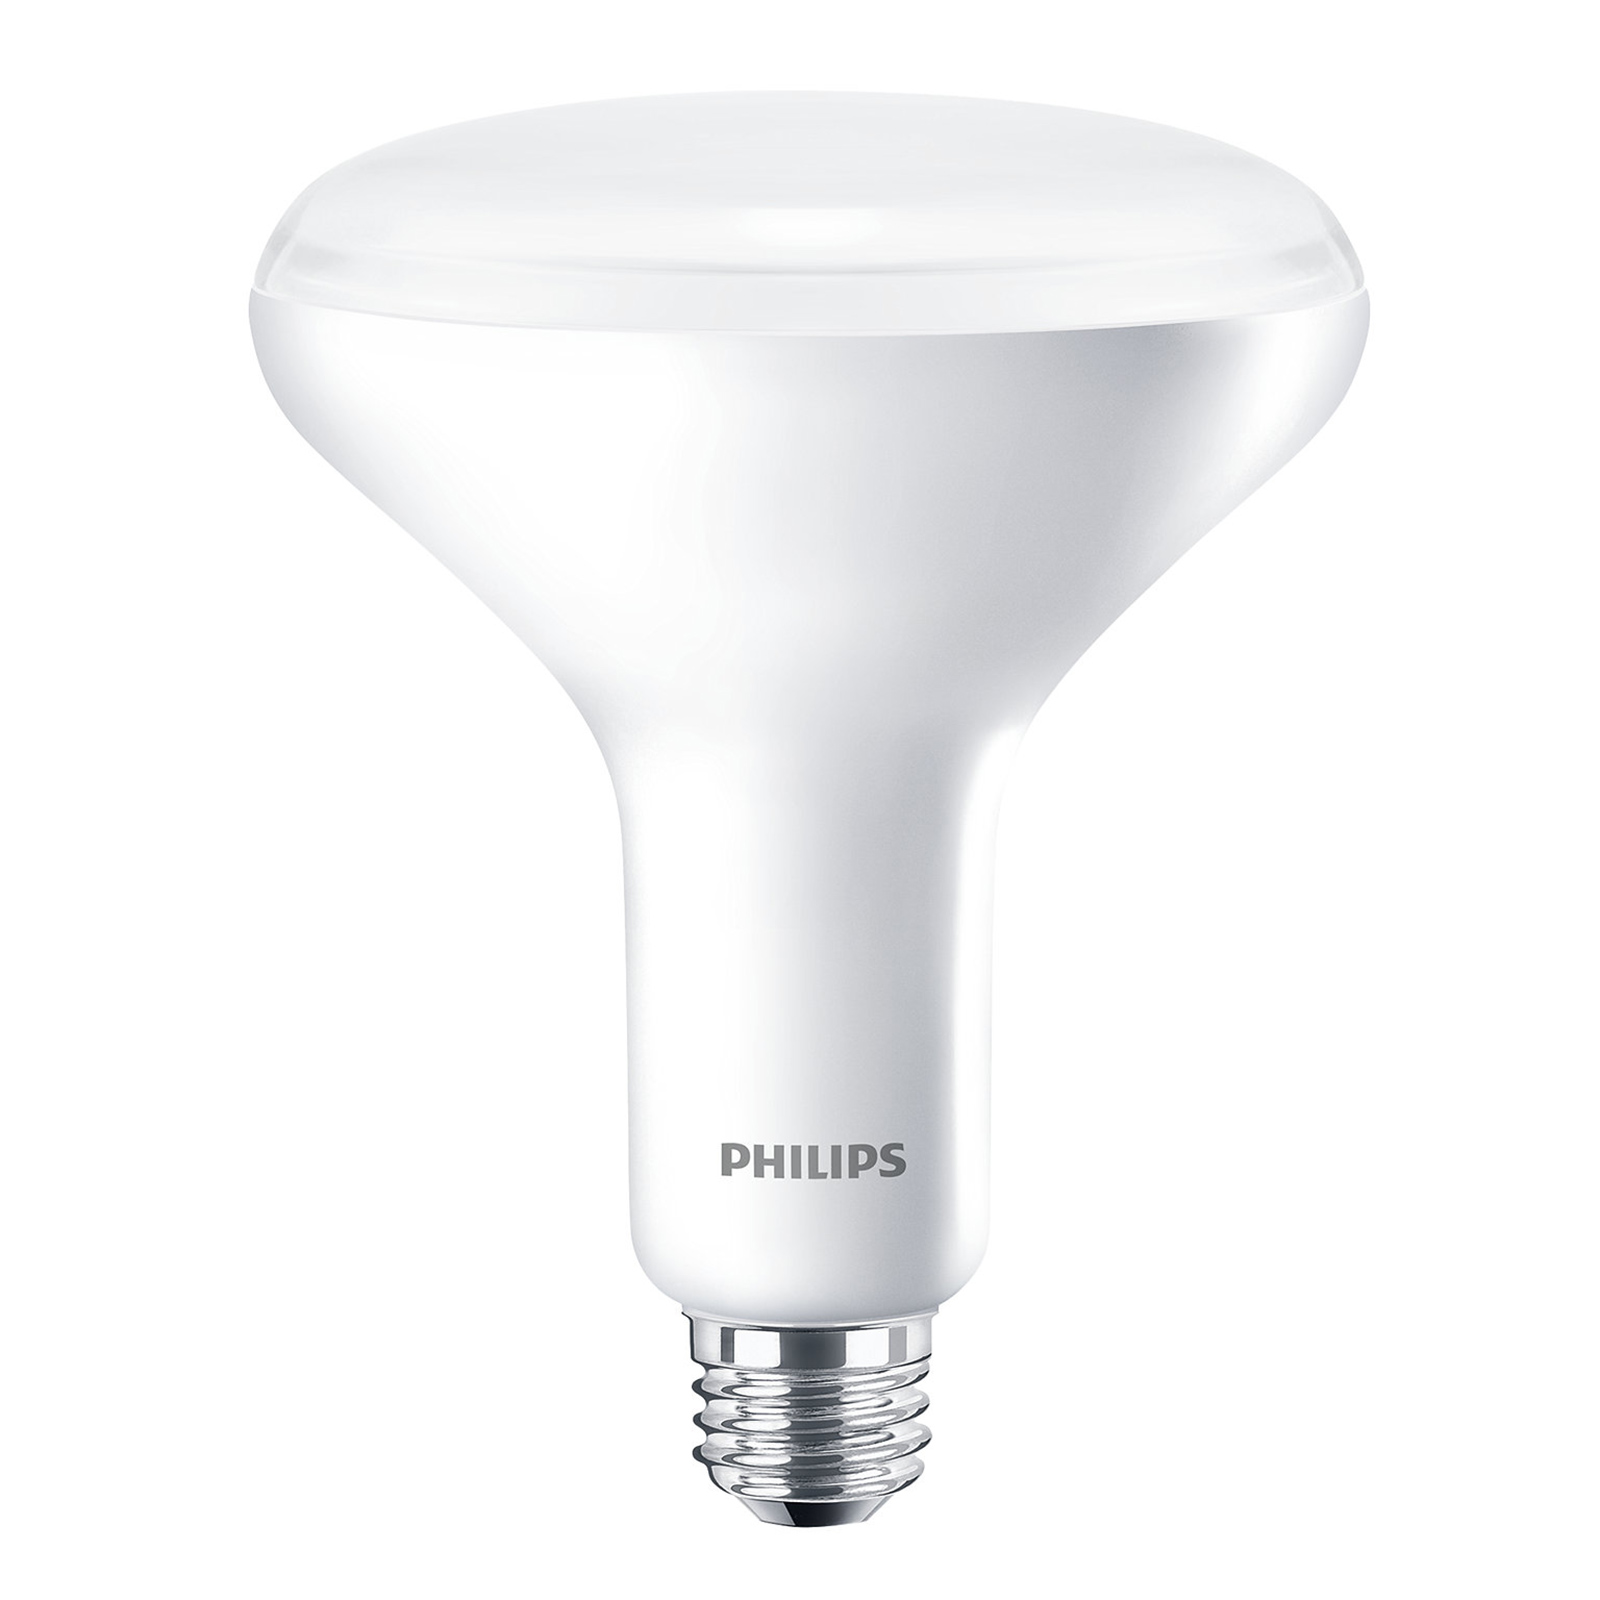 philips dimmable 10w br40 soft white 60w replacement led light bulb 12 pack 689989518425 ebay. Black Bedroom Furniture Sets. Home Design Ideas